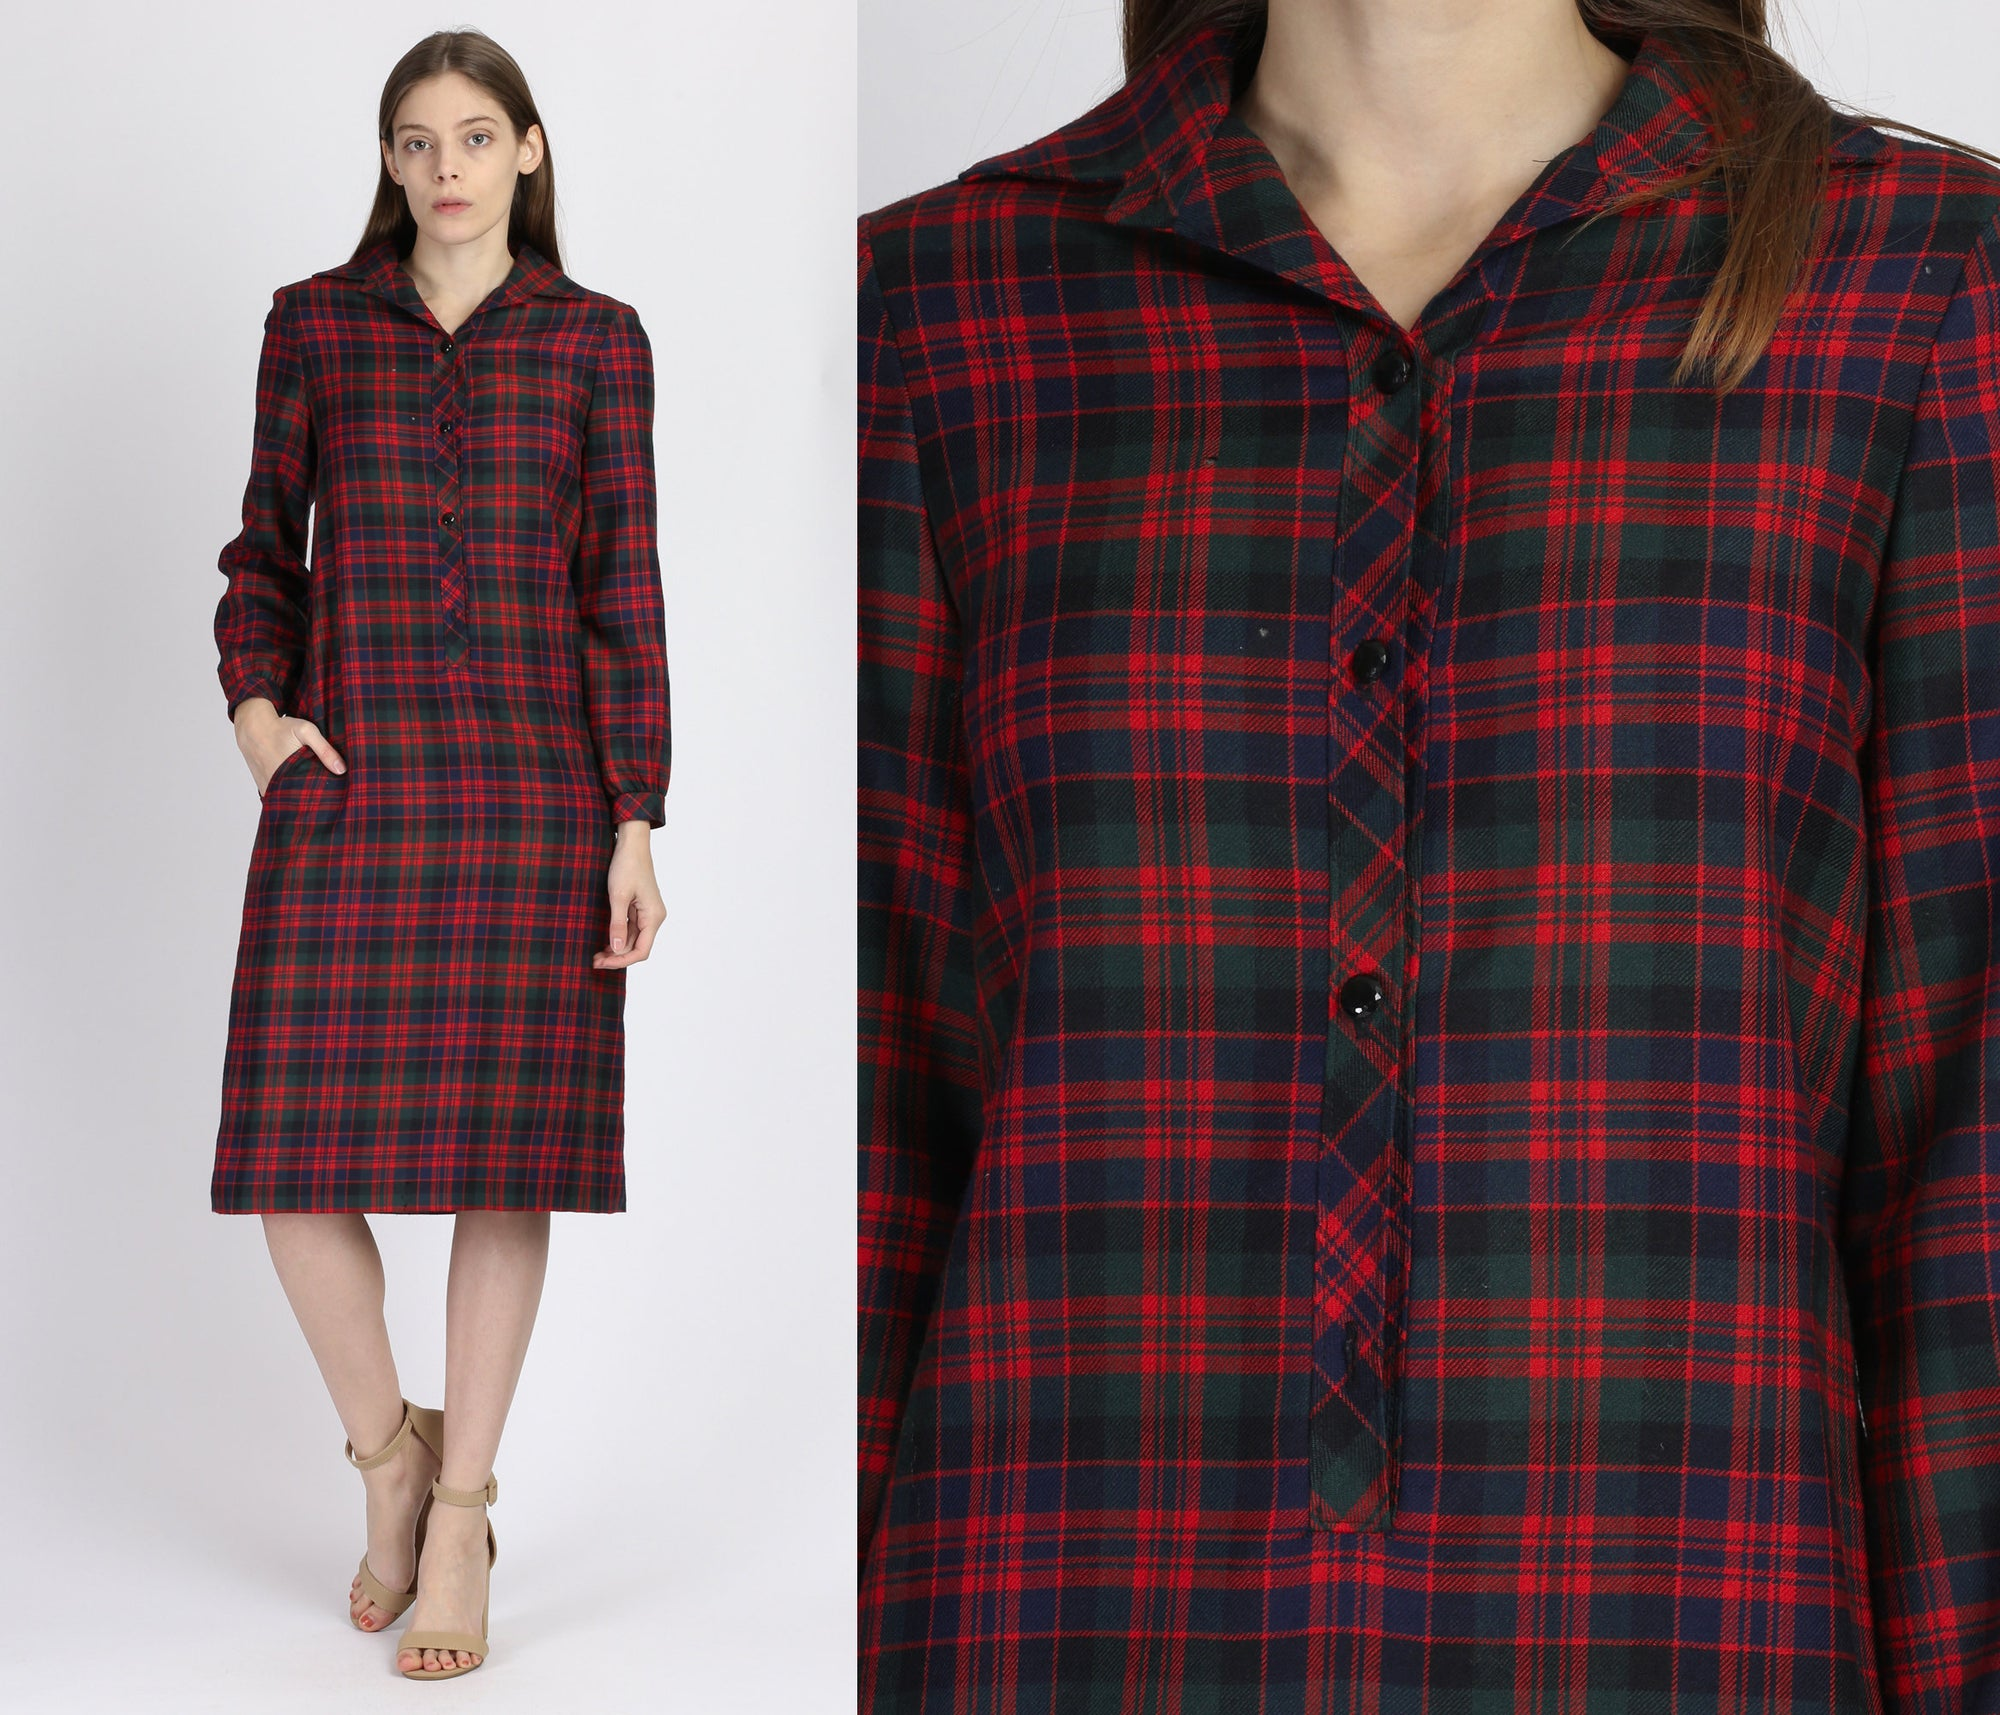 80s Red & Green Plaid Midi Dress - Medium